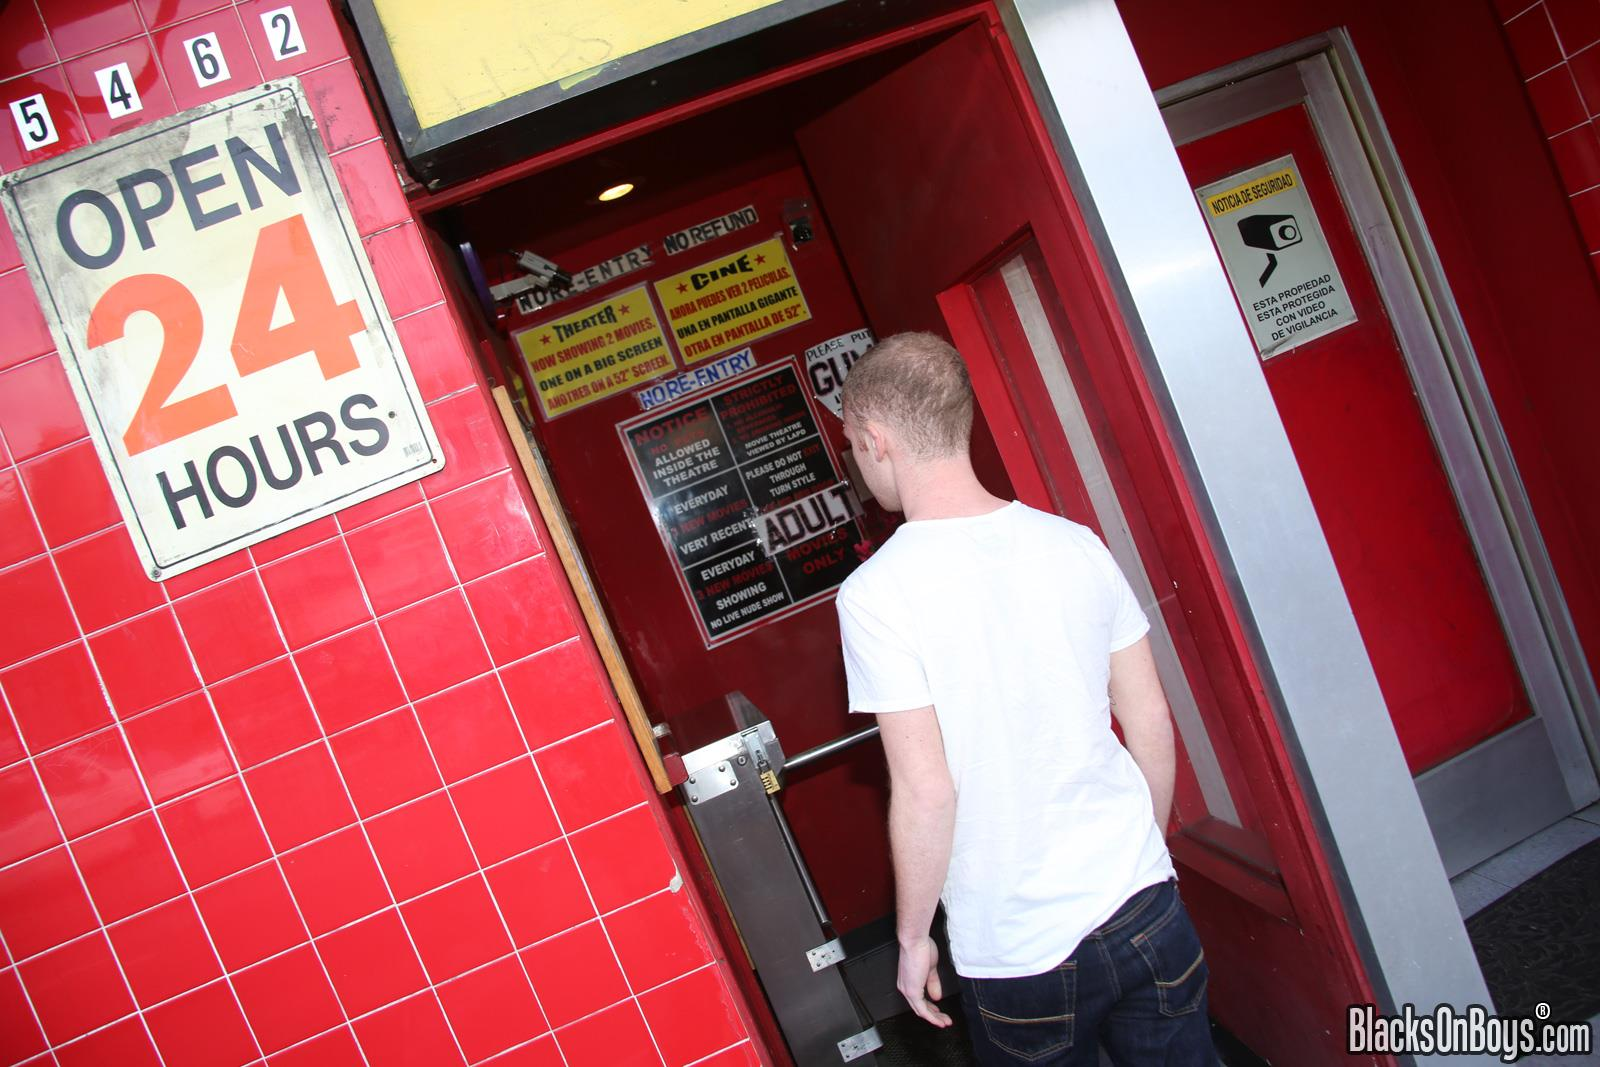 Blacks-On-Boys-Aiden-Connor-Straight-Twink-Takes-His-First-Black-Cock-Amateur-Gay-Porn-01 Straight Twink Takes His First Black Cock Up The Ass At An Adult Bookstore